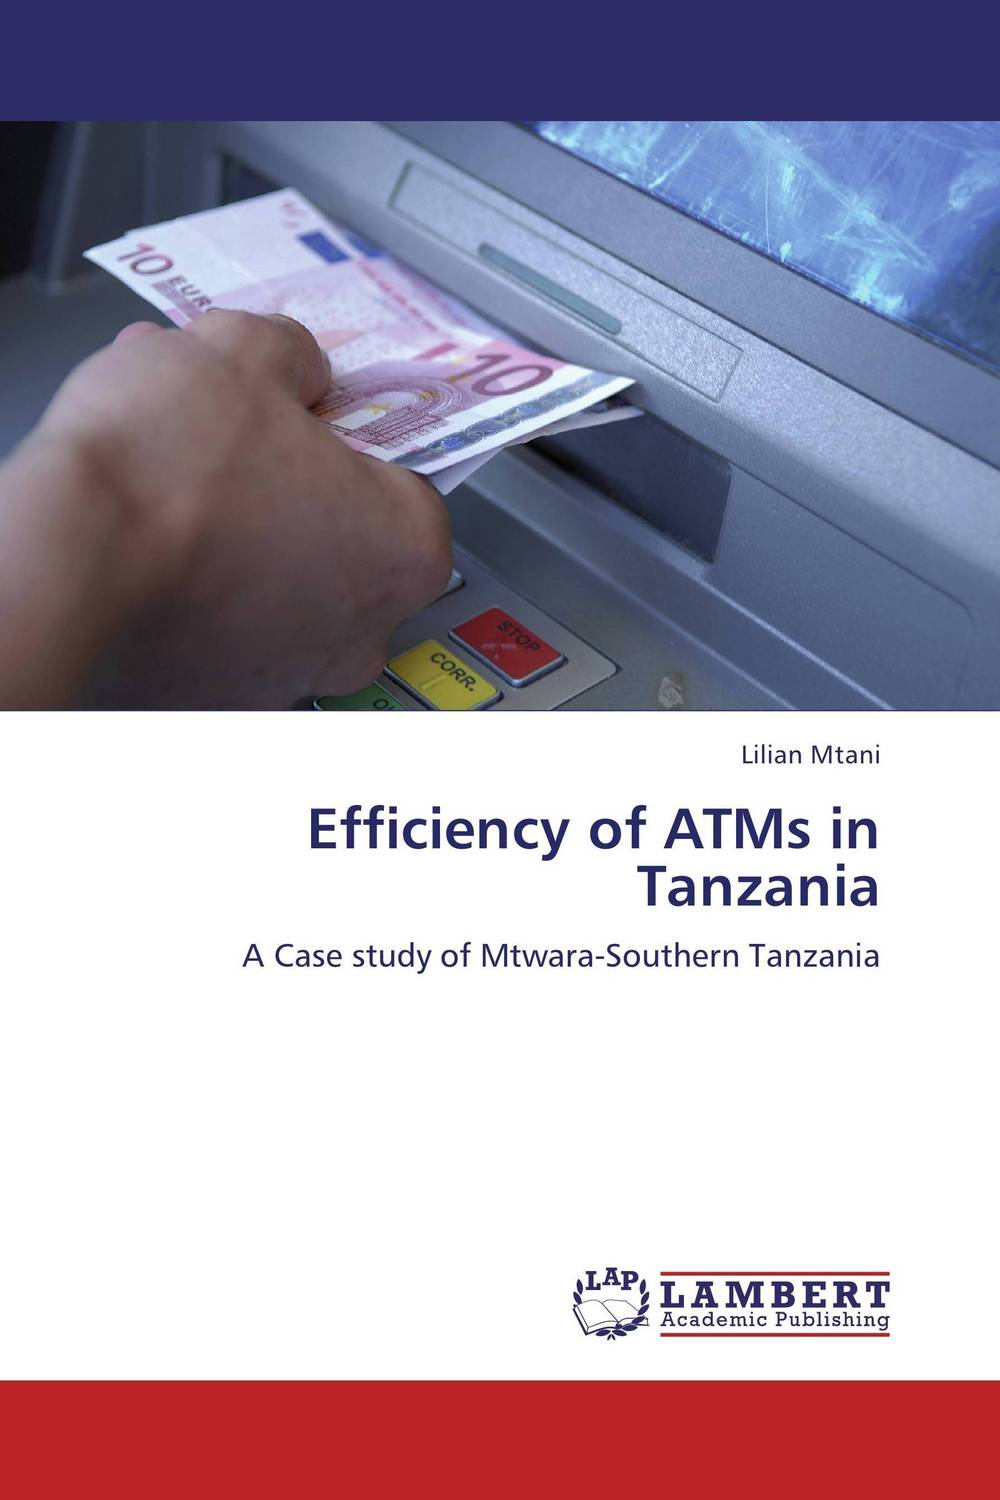 Efficiency of ATMs in Tanzania